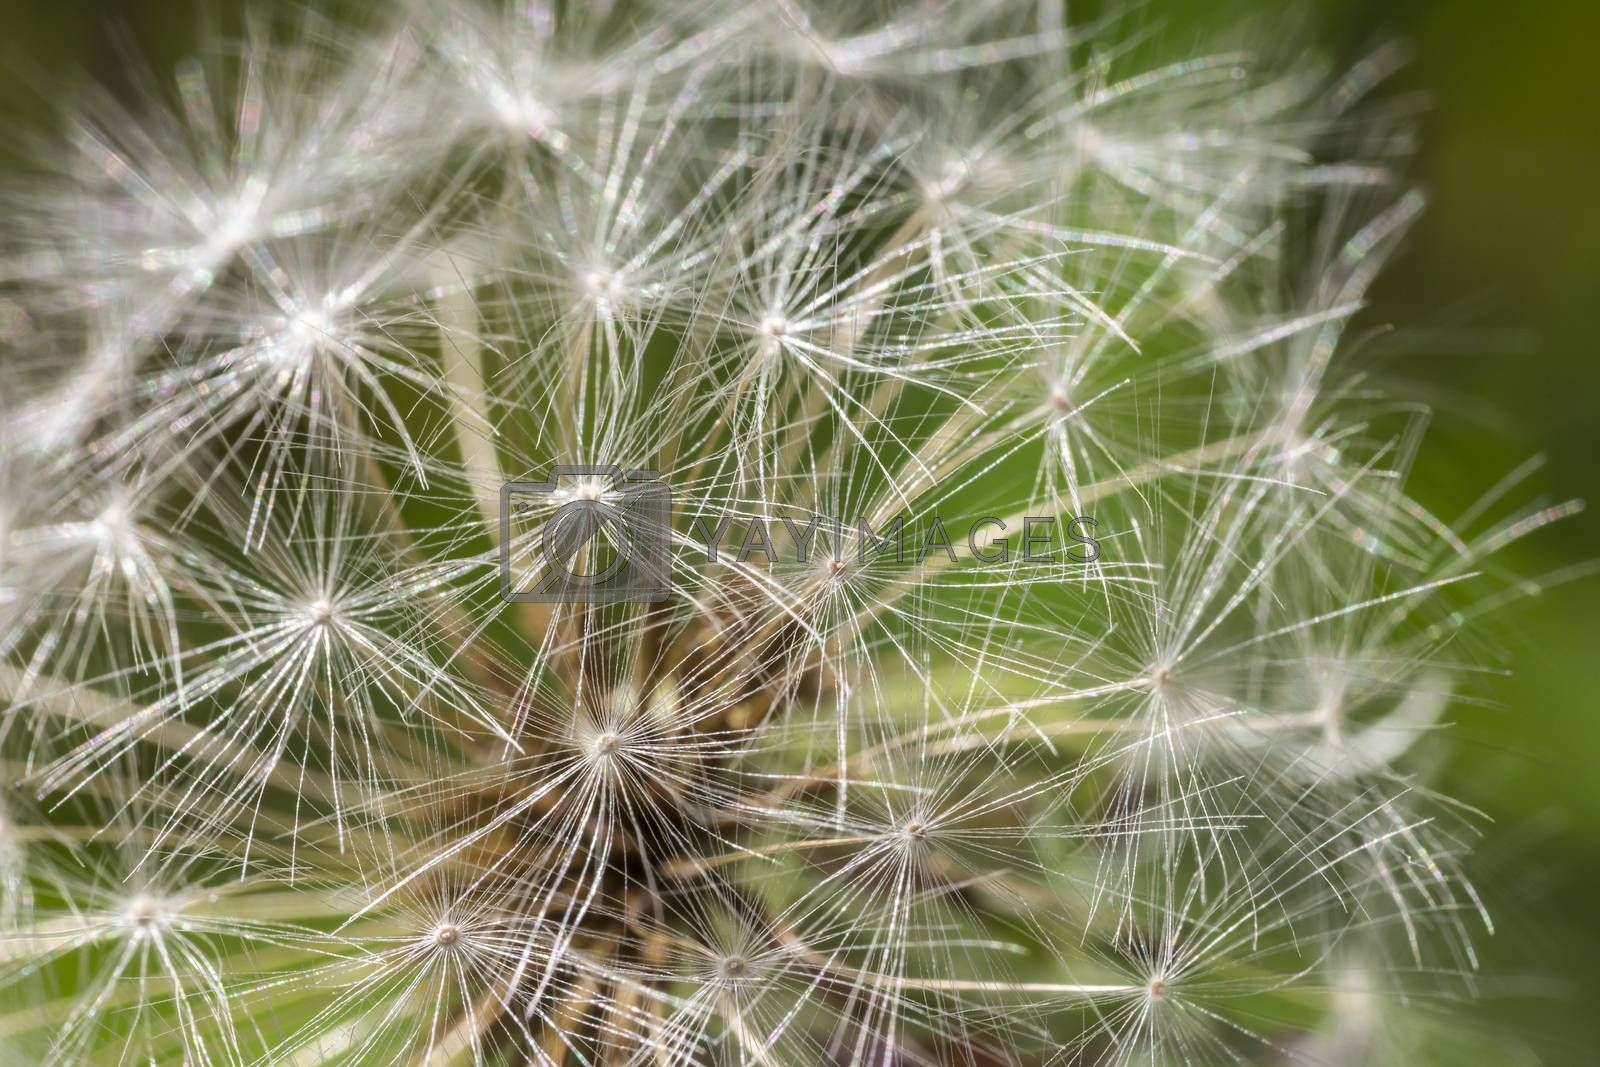 Dandelion with Seeds close up.